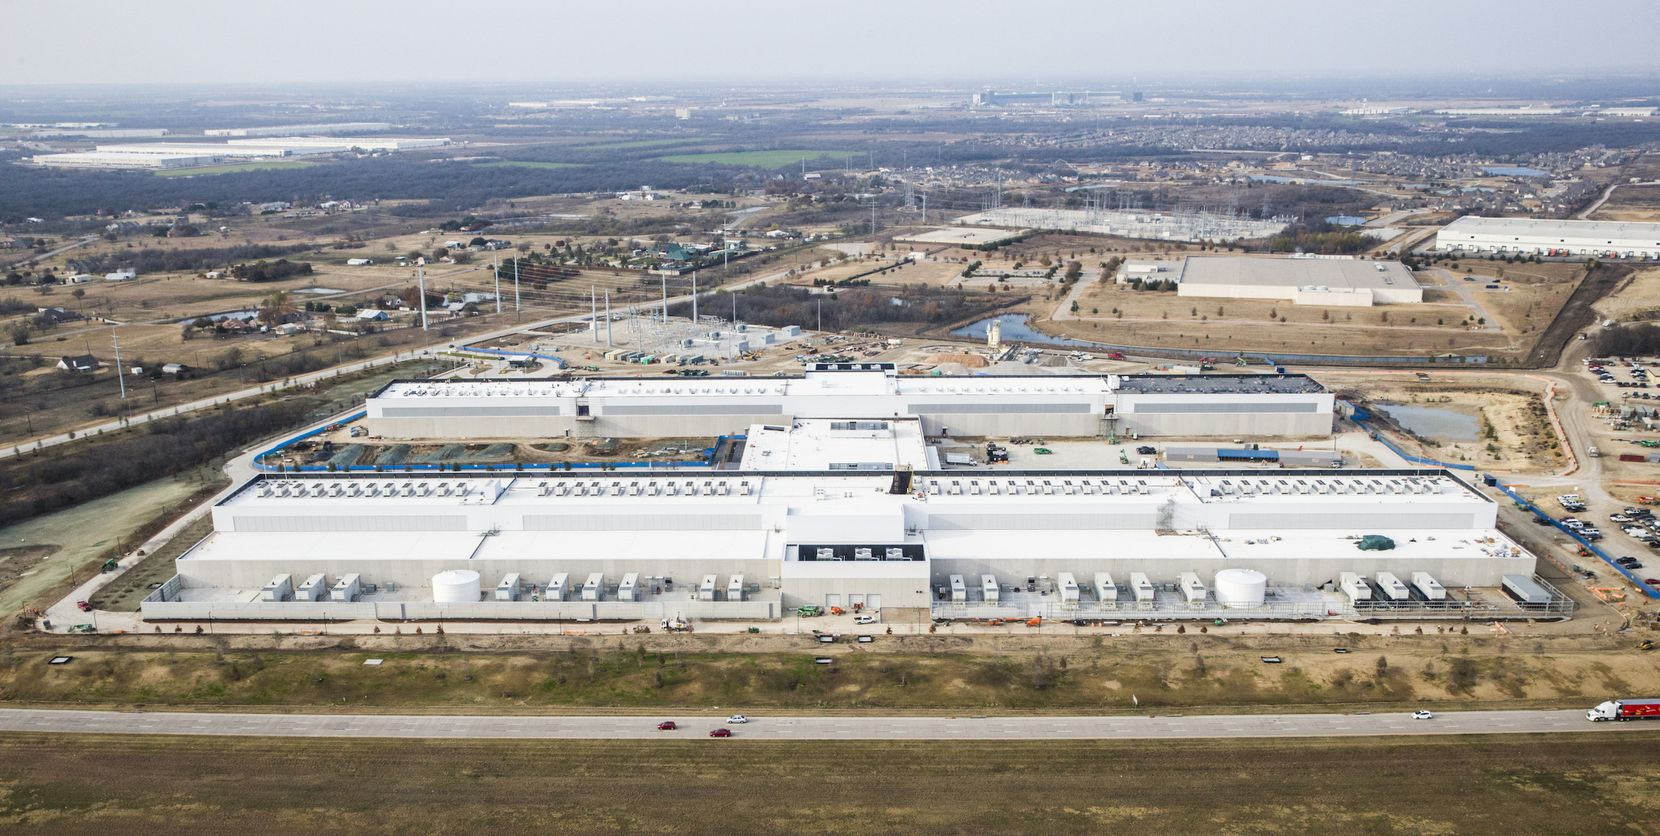 Aerial view of the new Facebook Data Center, which is part of the Alliance Texas development.